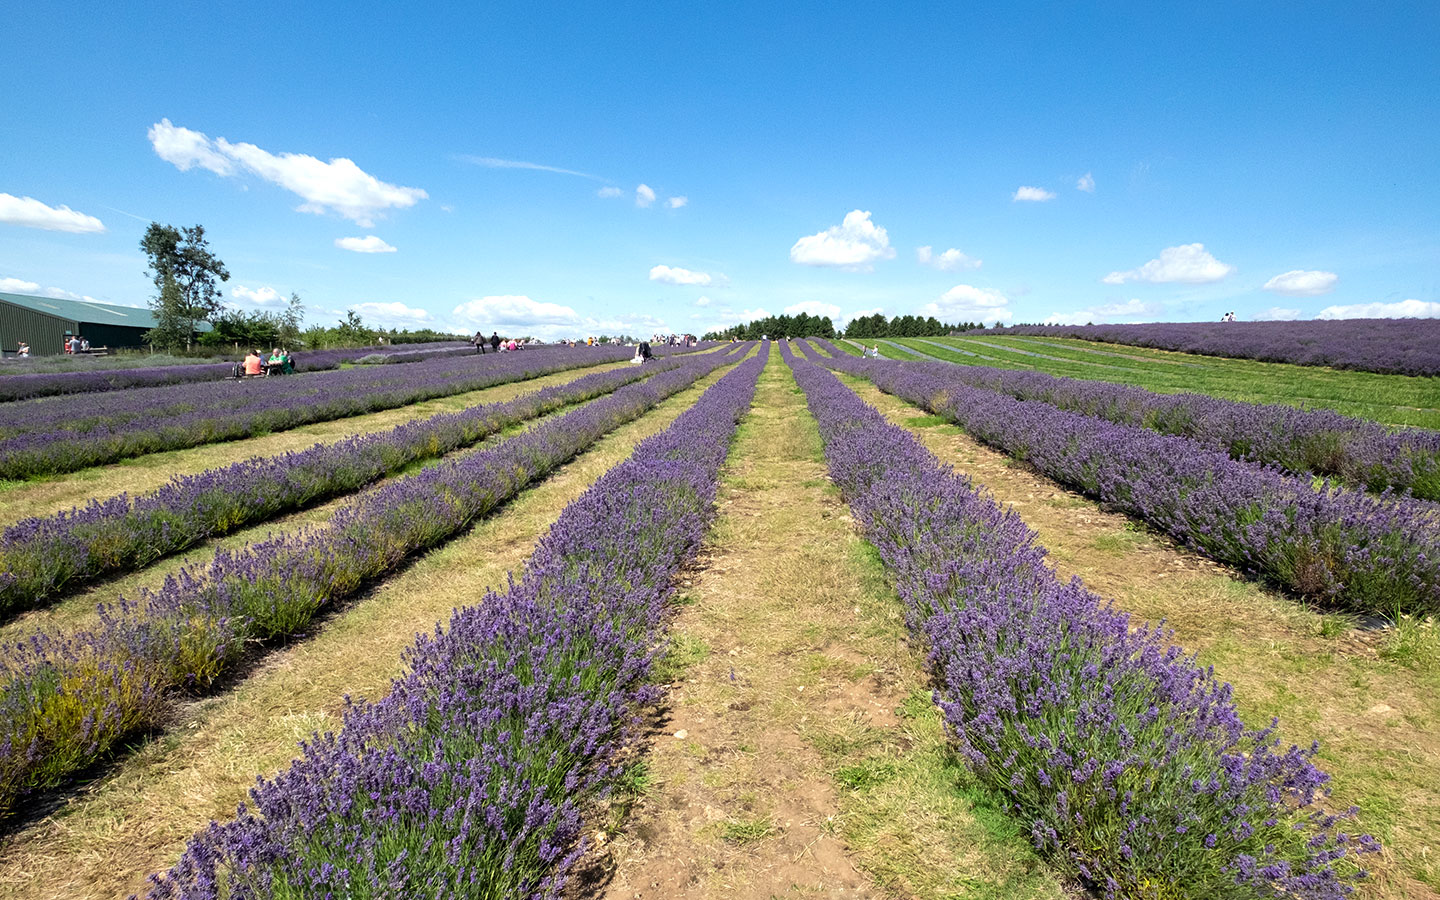 Exploring the Cotswold Lavender fields